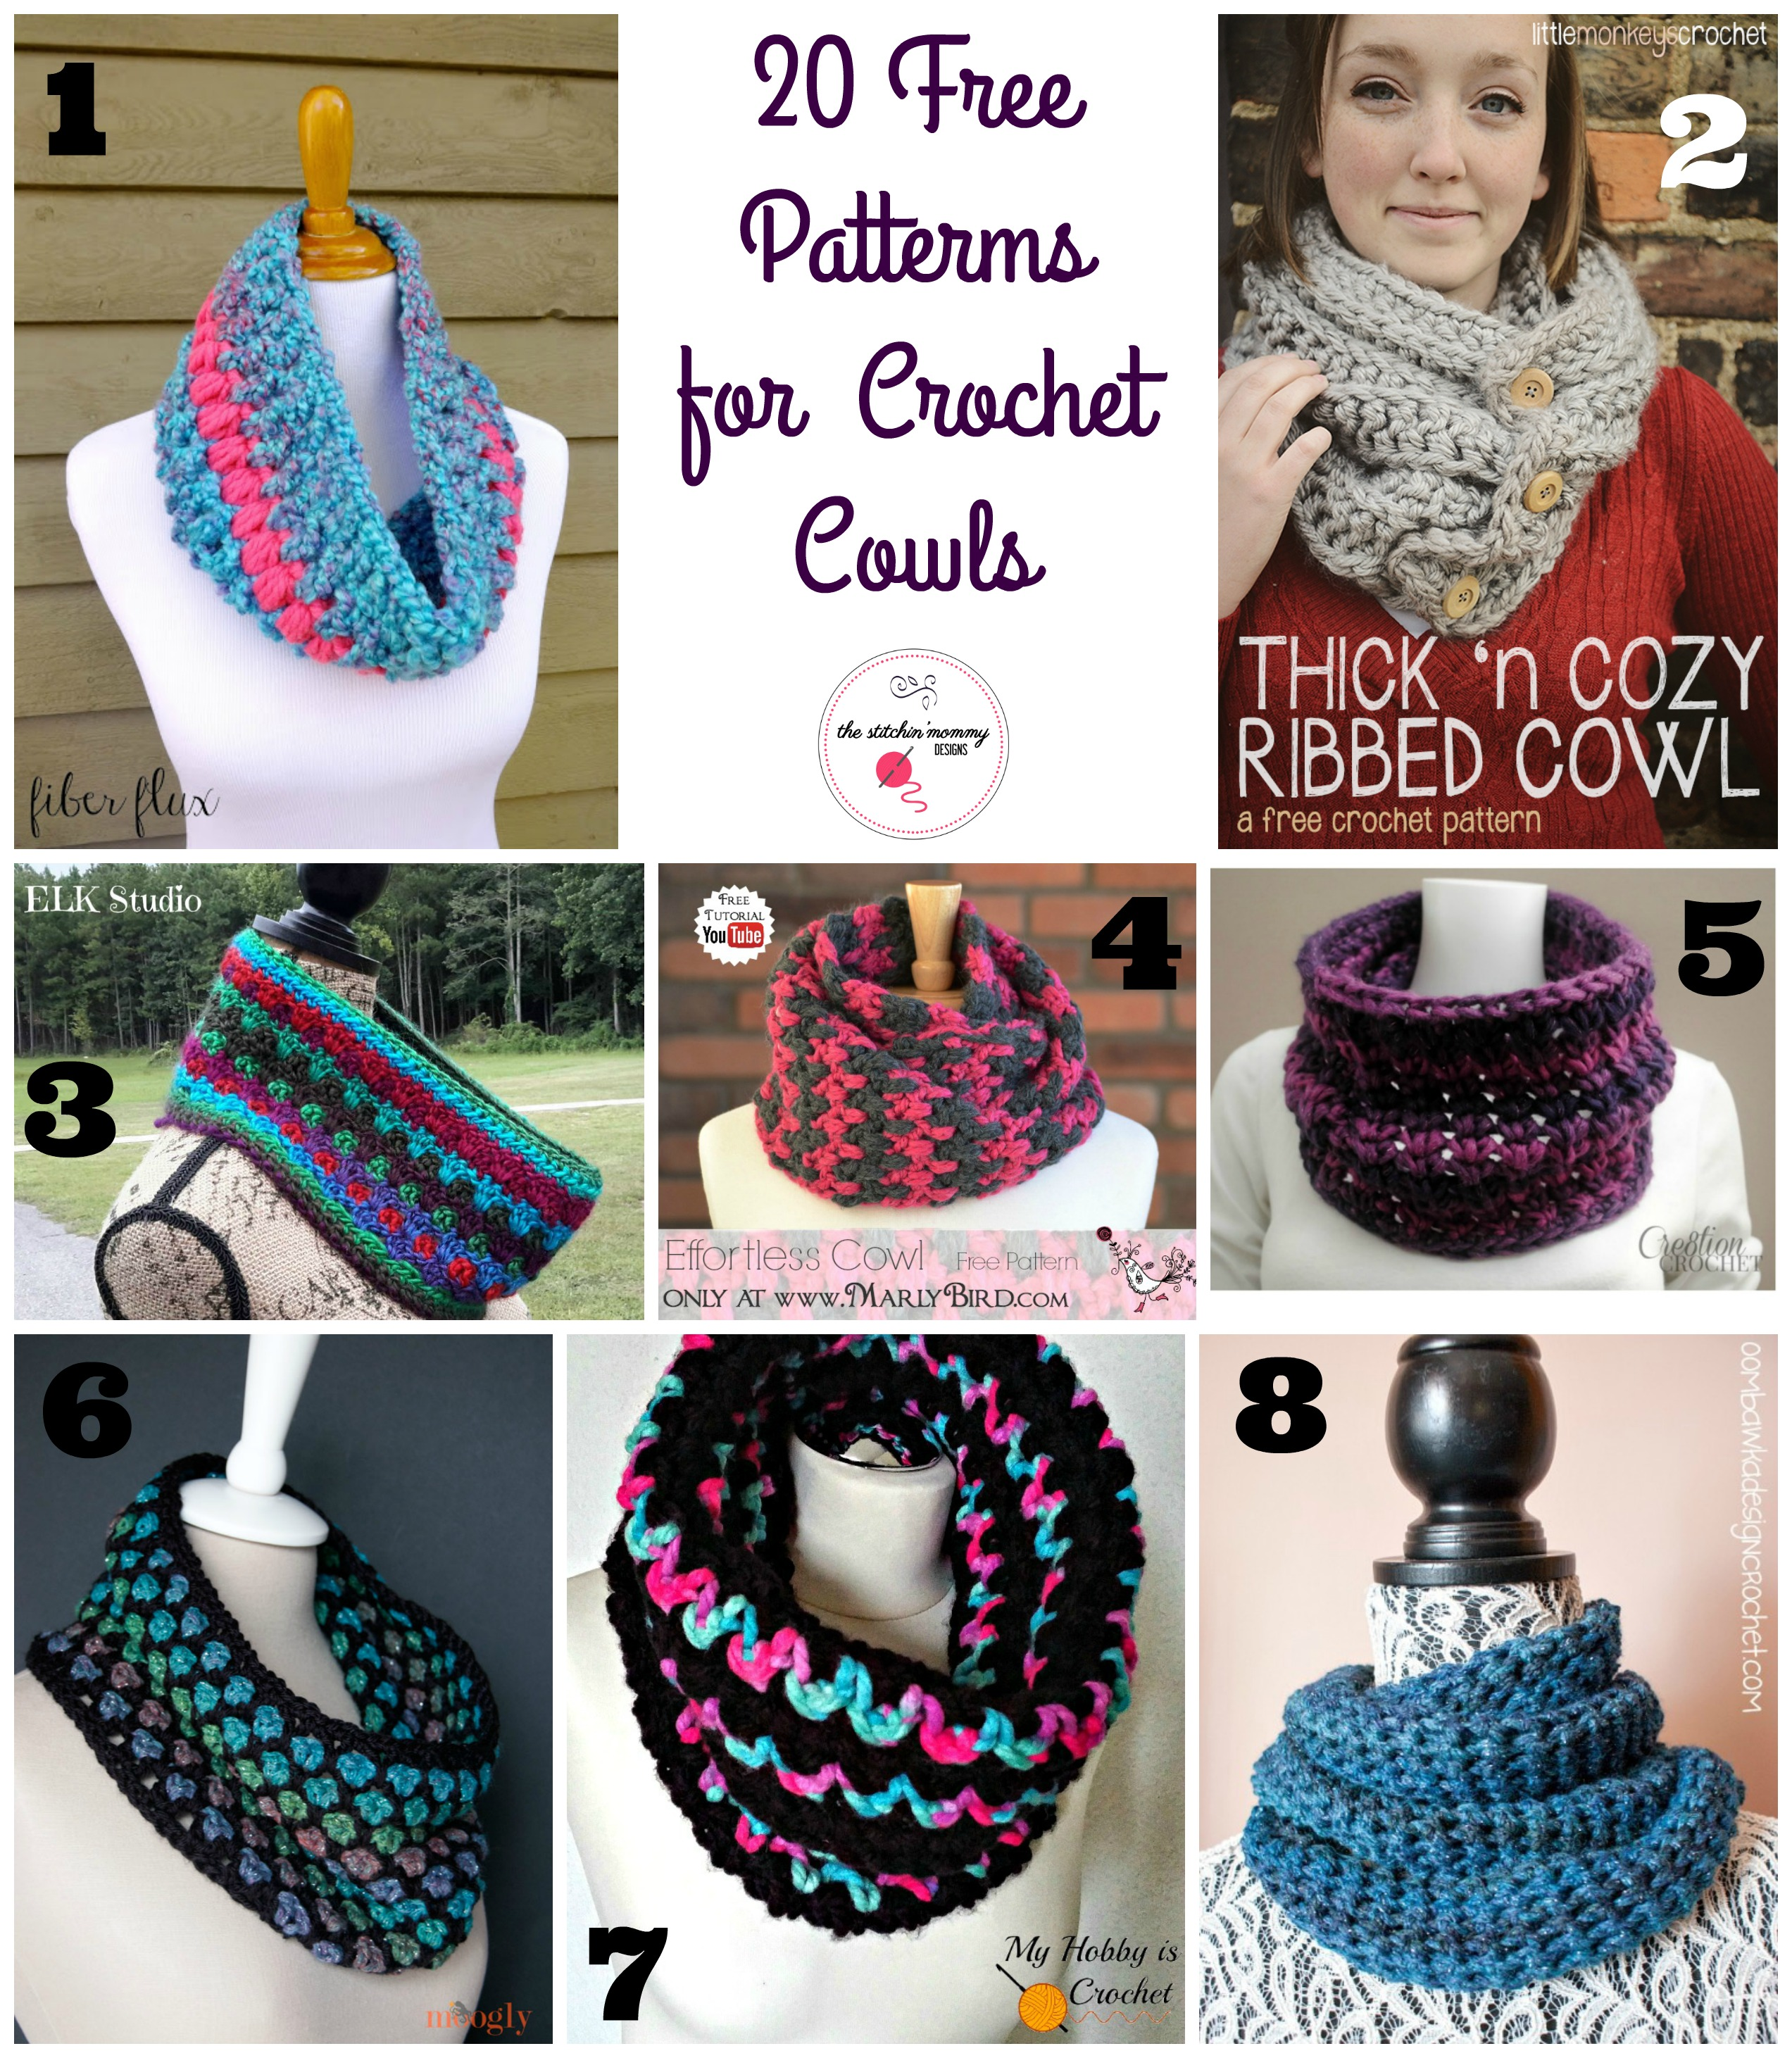 20 Free Patterns for Crochet Cowls - The Stitchin Mommy